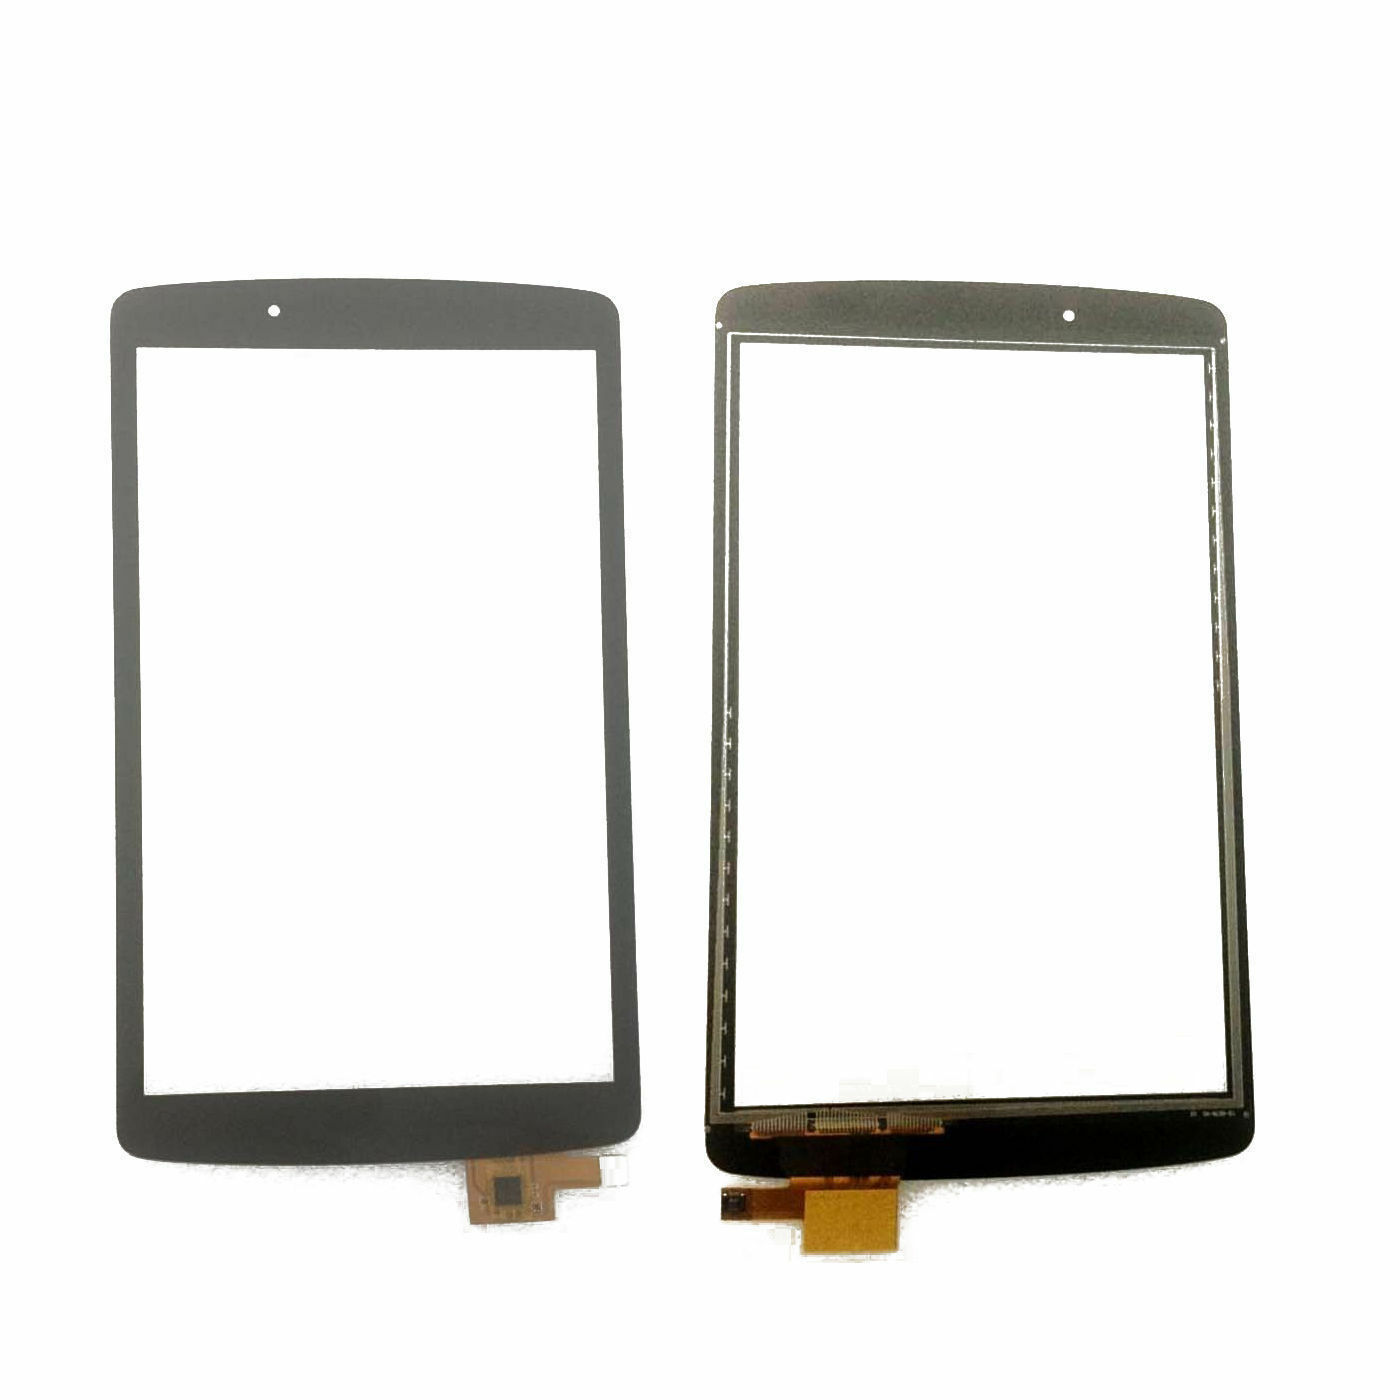 LPPLY New For LG G Pad V498 Touch Screen Digitizer Glass+ 8.0 V495 V496 V498 UK495